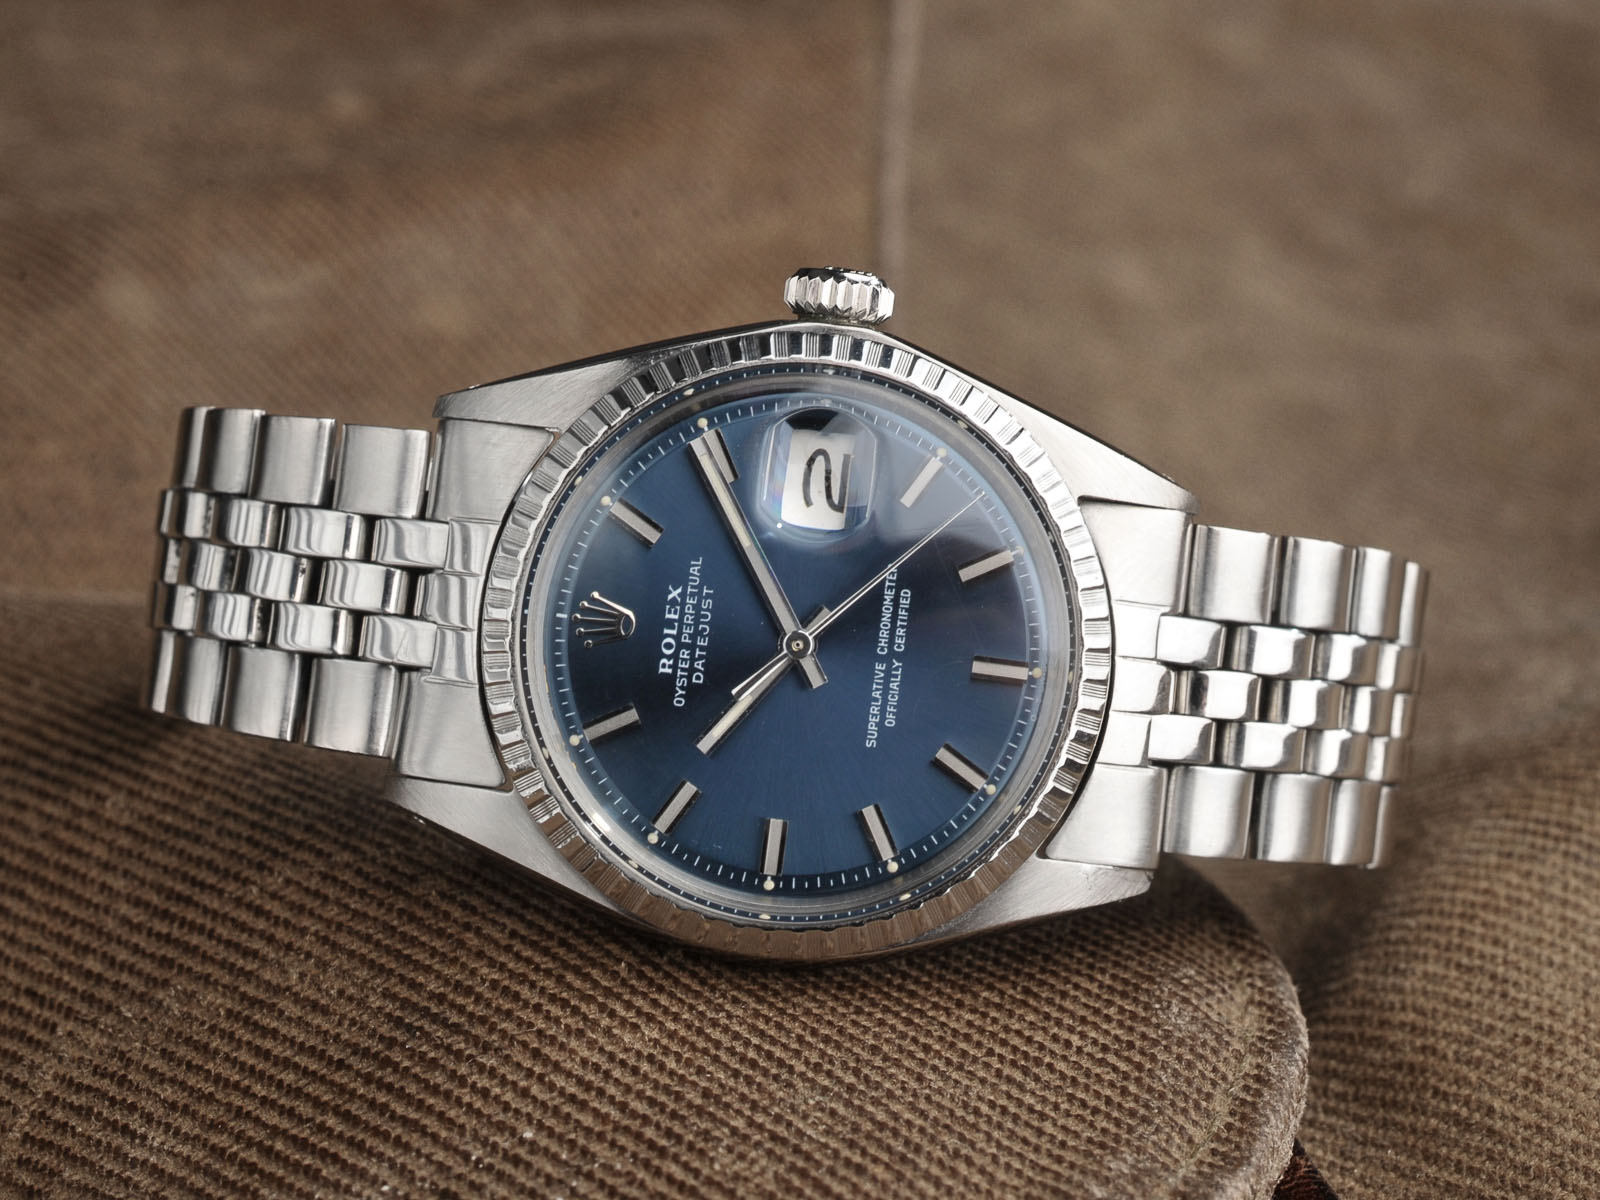 Fedex Box Prices >> ROLEX 1603 DATEJUST BLUE WIDE BODY - Bulang and Sons